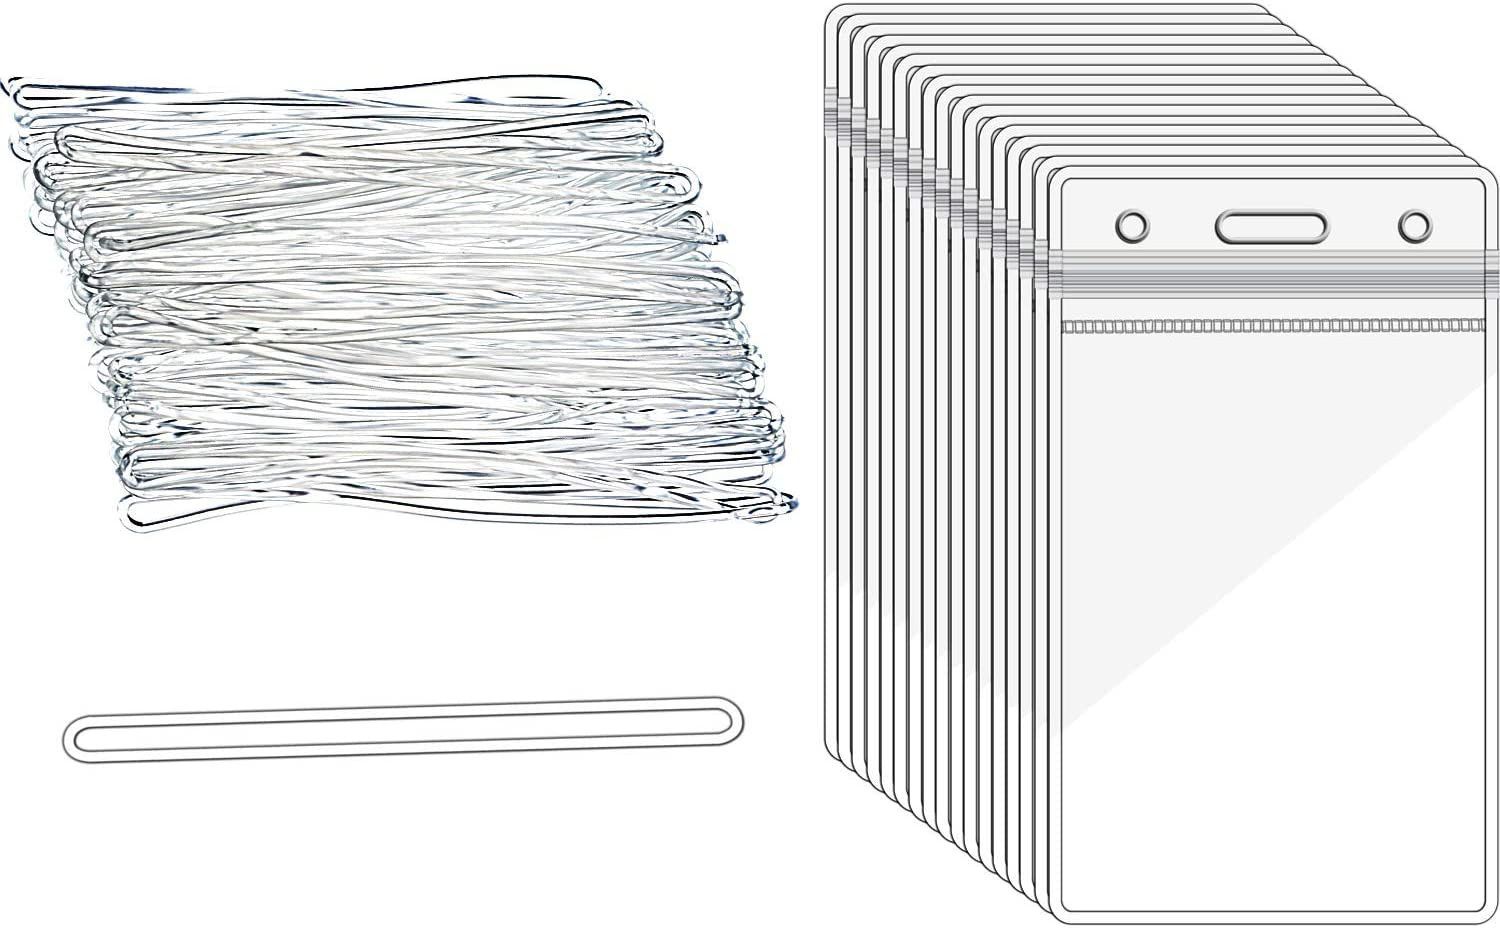 Outus 50 Pieces Clear Luggage Identification Tags ID Card Badge Holder and 50 Pieces Plastic Luggage Loops Travel Straps for Business Travel Supplies (11 x 6.5 cm)